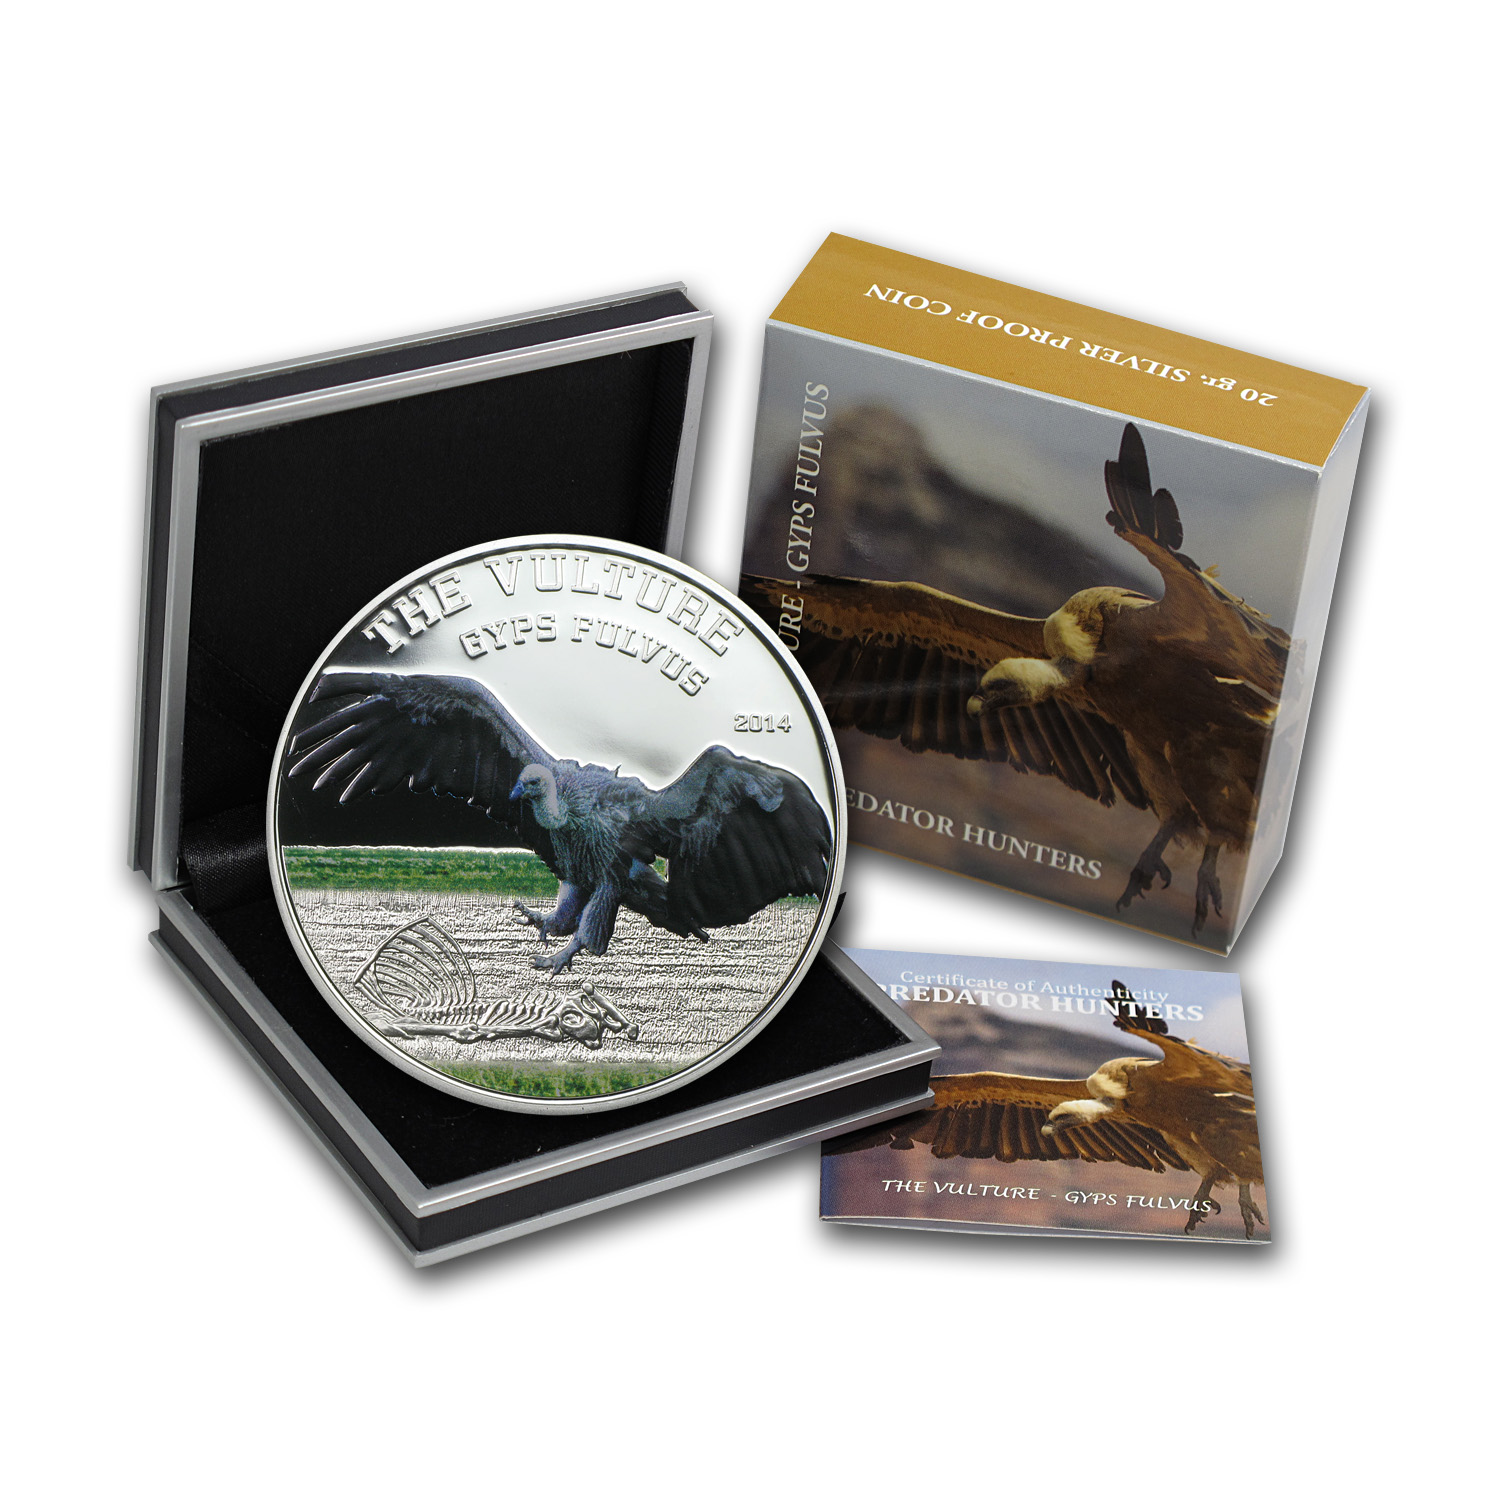 2014 Tanzania 1 oz Silver Predator Hunters The Vulture Proof